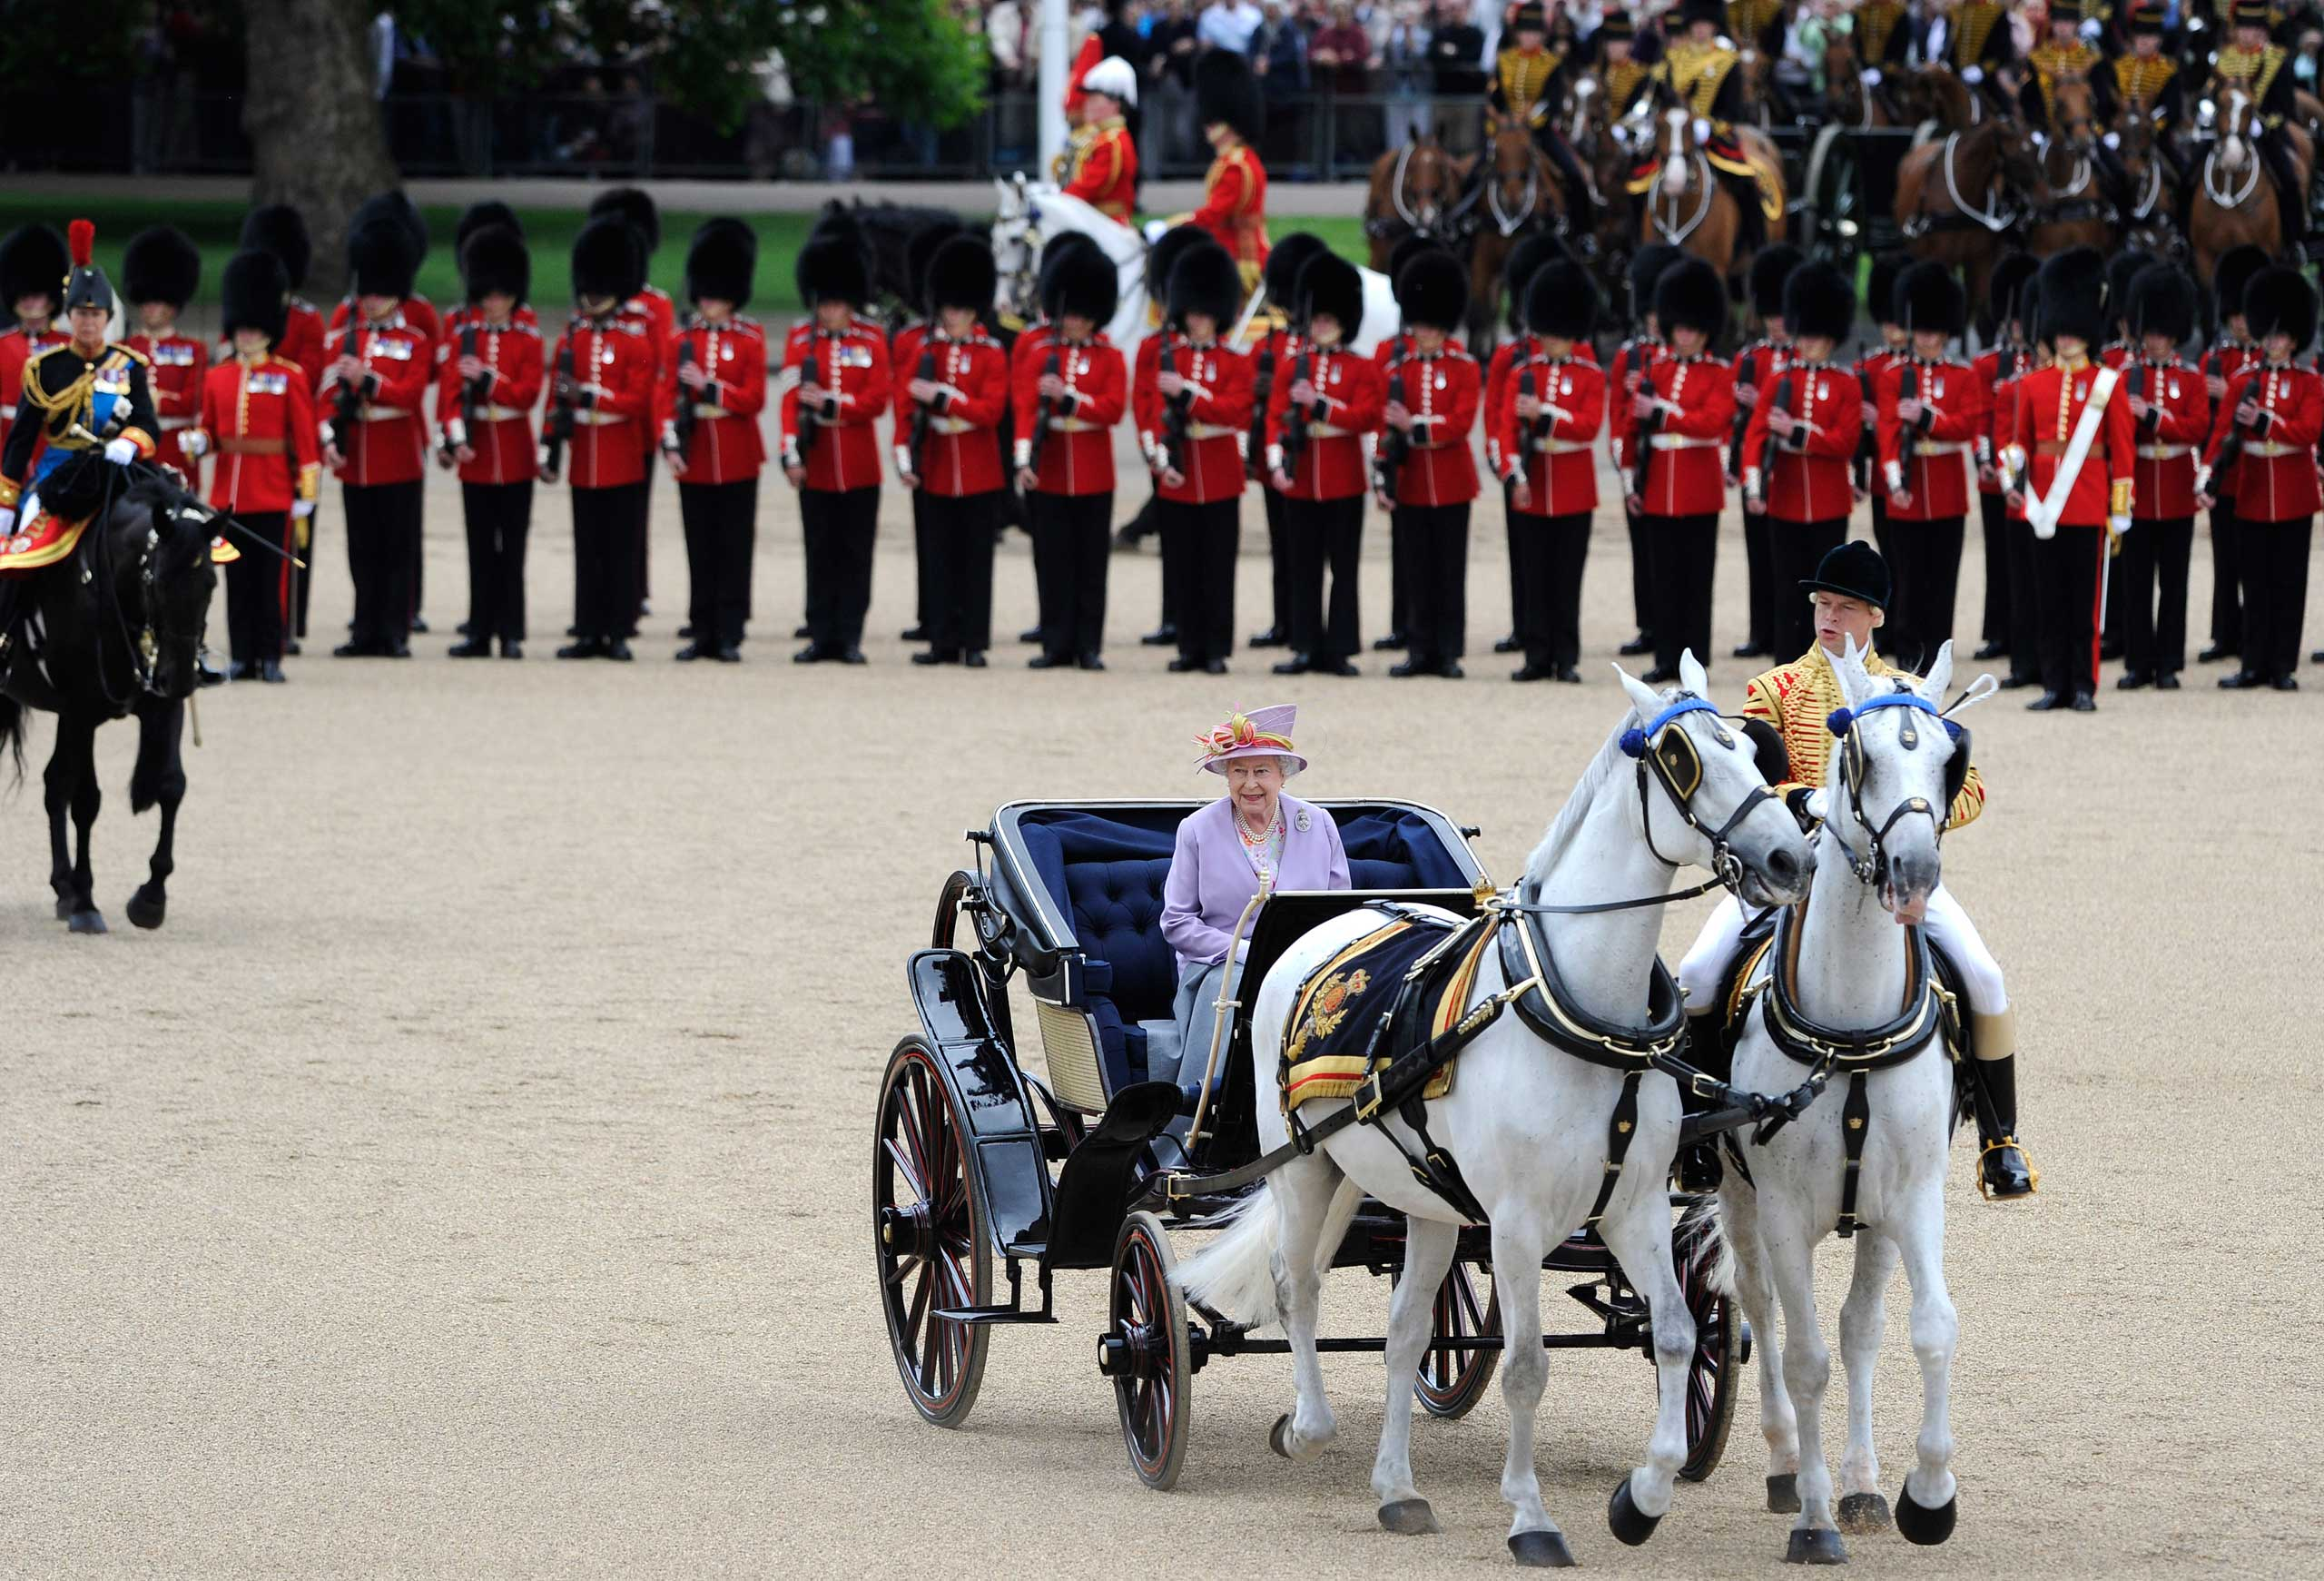 Queen Elizabeth II rides in an open carriage as she attends the Trooping the Colour ceremony to celebrate her official birthday in London in June 2010.